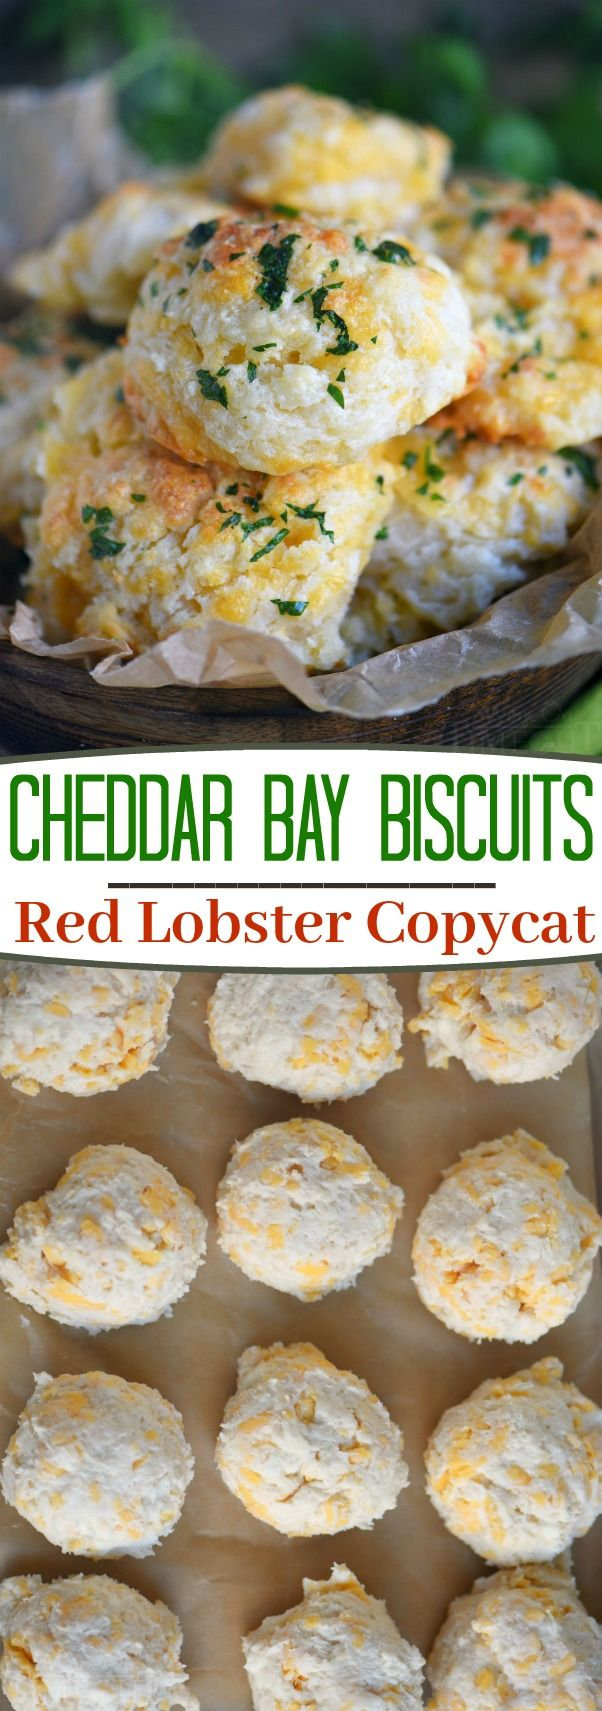 These Cheddar Bay Biscuits (Red Lobster Copycat) are entirely irresistible and can be on your table in less than 20 minutes! I dare you to eat just one! Packed with cheesy goodness, these easy biscuits are the perfect addition to every meal! // Mom On Timeout #ad #CashApp